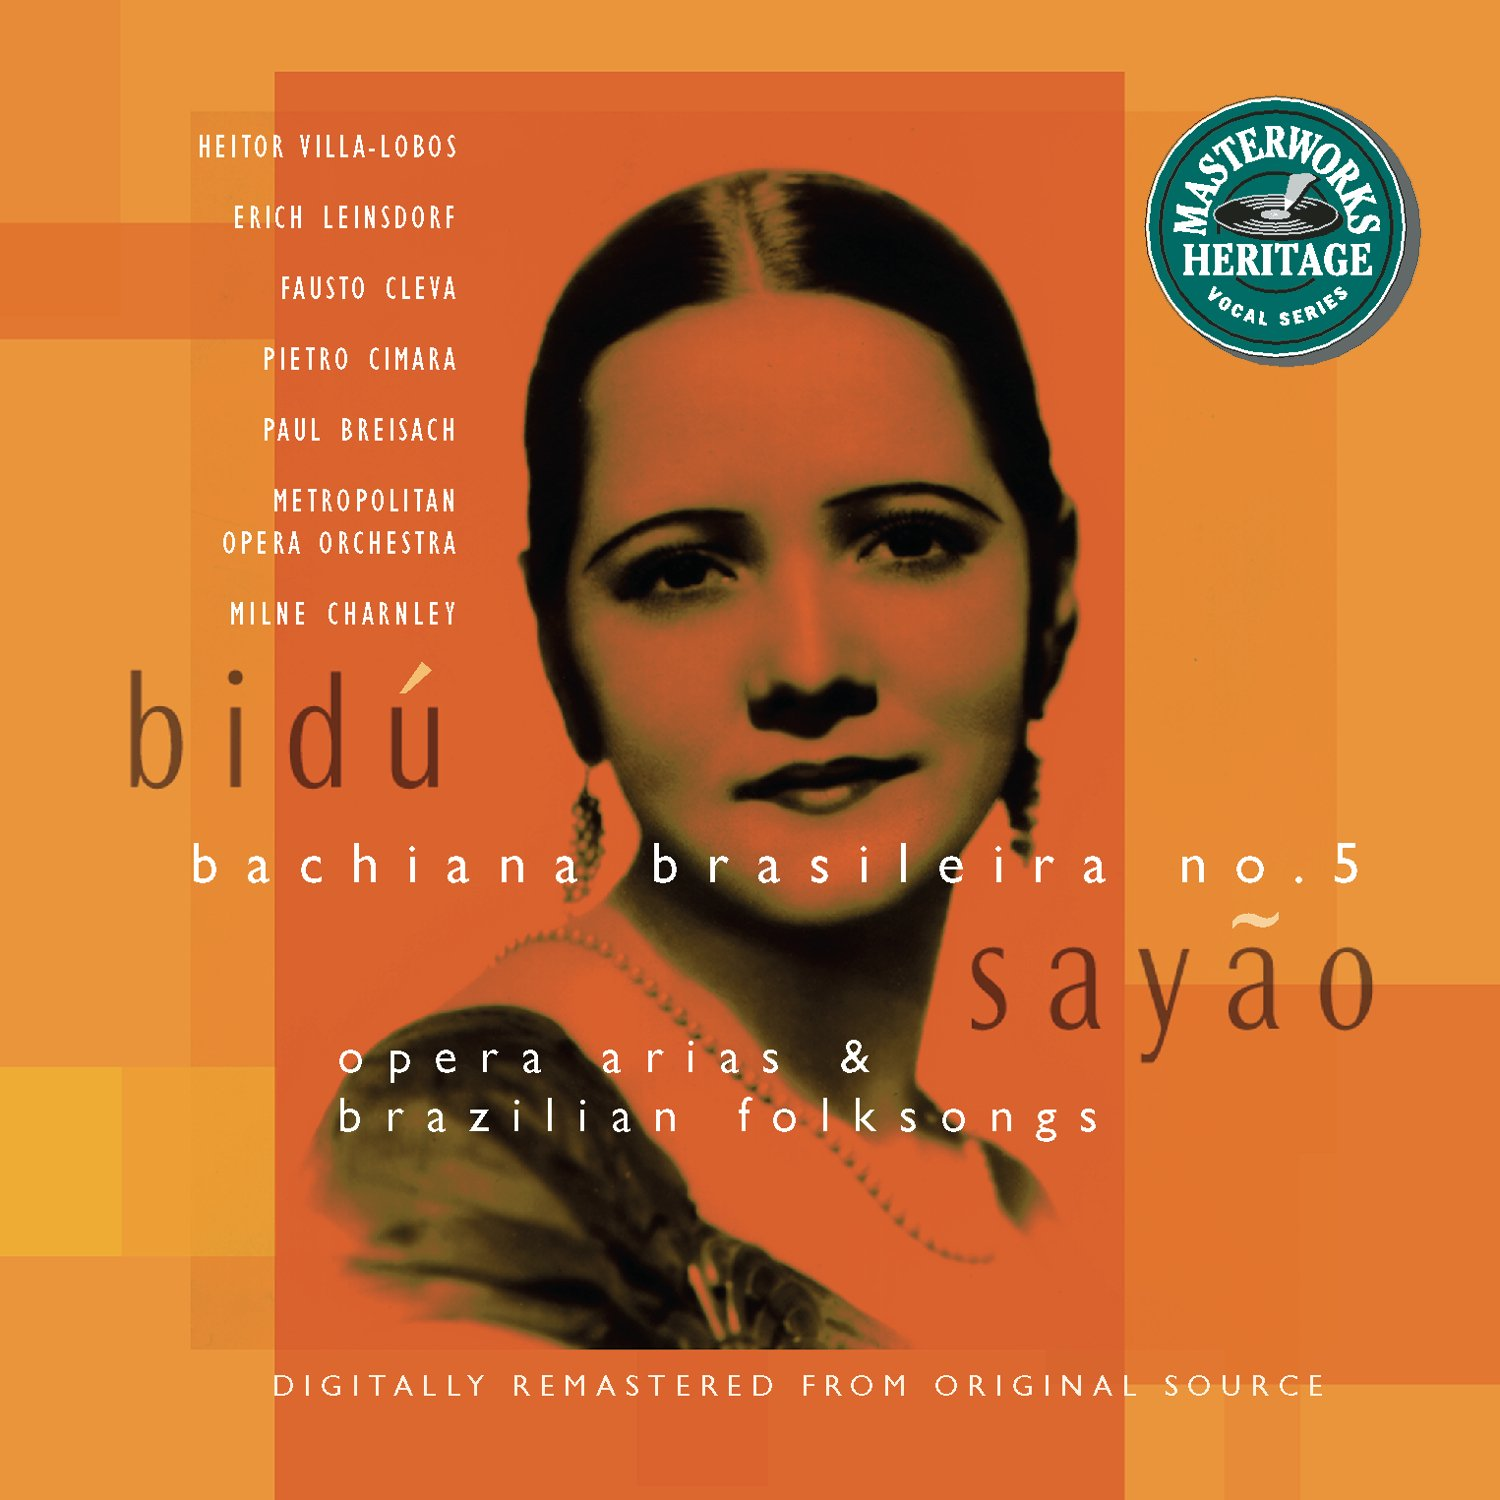 Bidu Recommended Sayao: Opera Arias Folksongs and All items in the store Brazilian